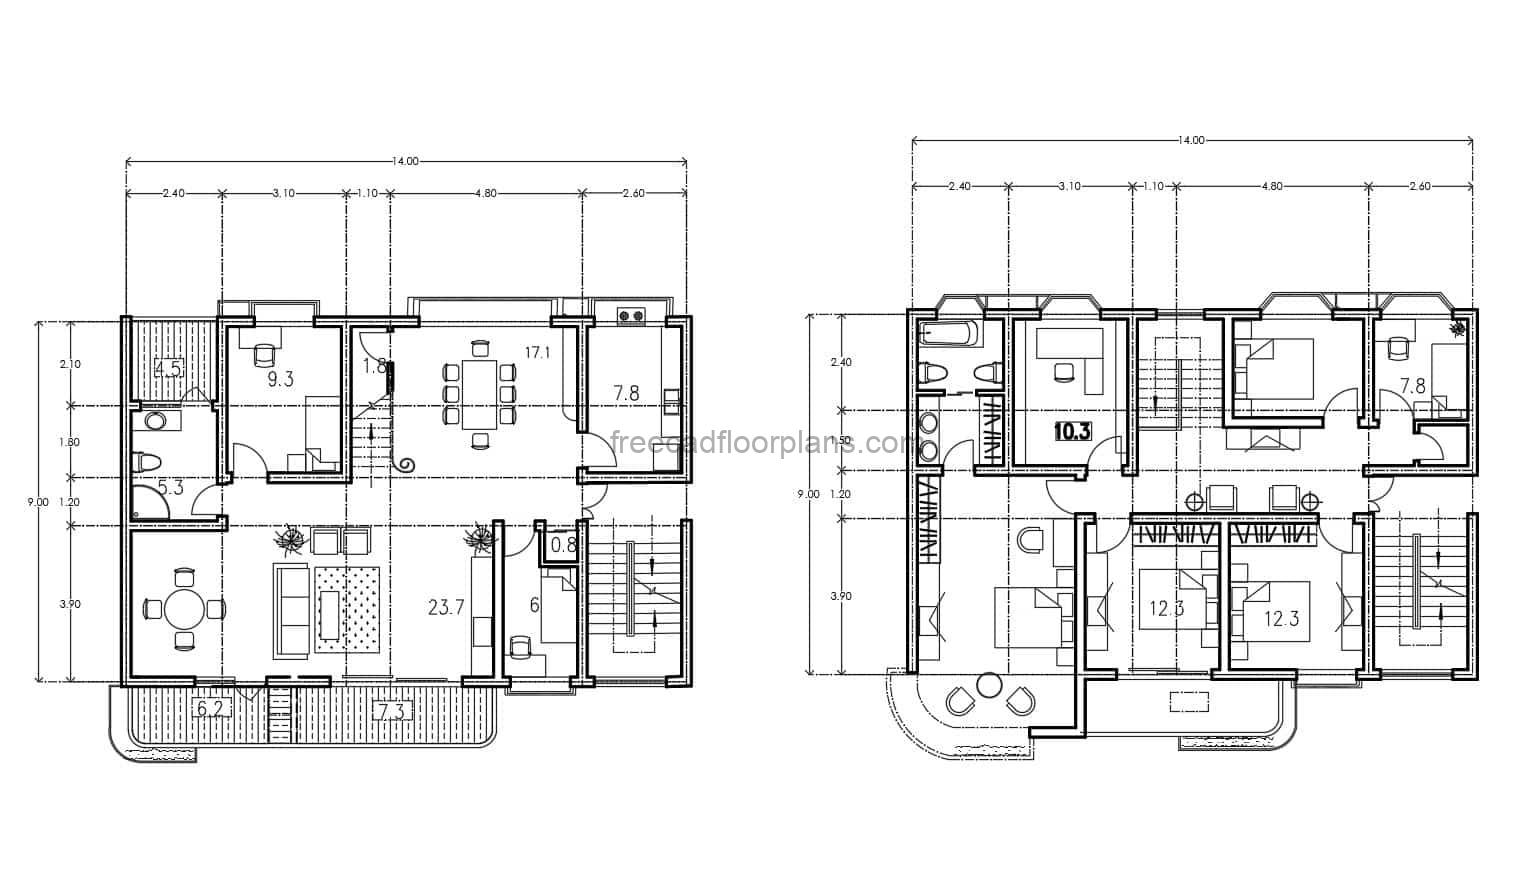 Architectural plans of Duplex House with front balcony with independent staircase, front and side balcony including a back balcony in one of the bathrooms, four bedrooms in one of the houses and two bedrooms in the other house. Plans for free download in 2d dwg autocad format, with dimensions and interior blocks.